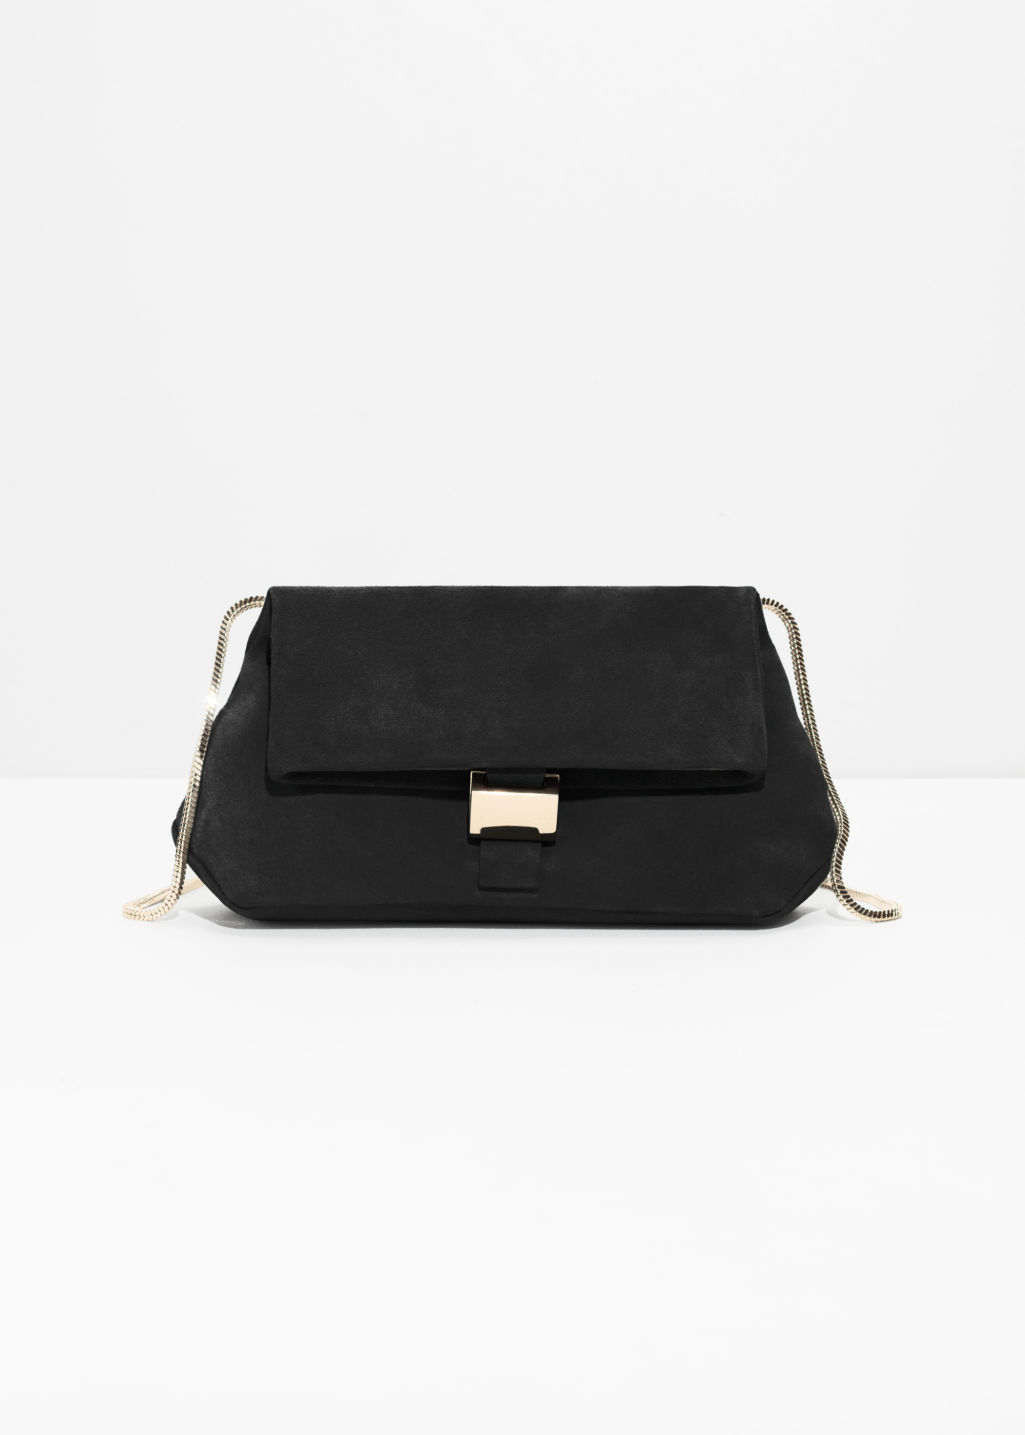 3cc098c7ee28 Small Leather Fold-Over Bag - Black Suede - Shoulderbags -   Other ...